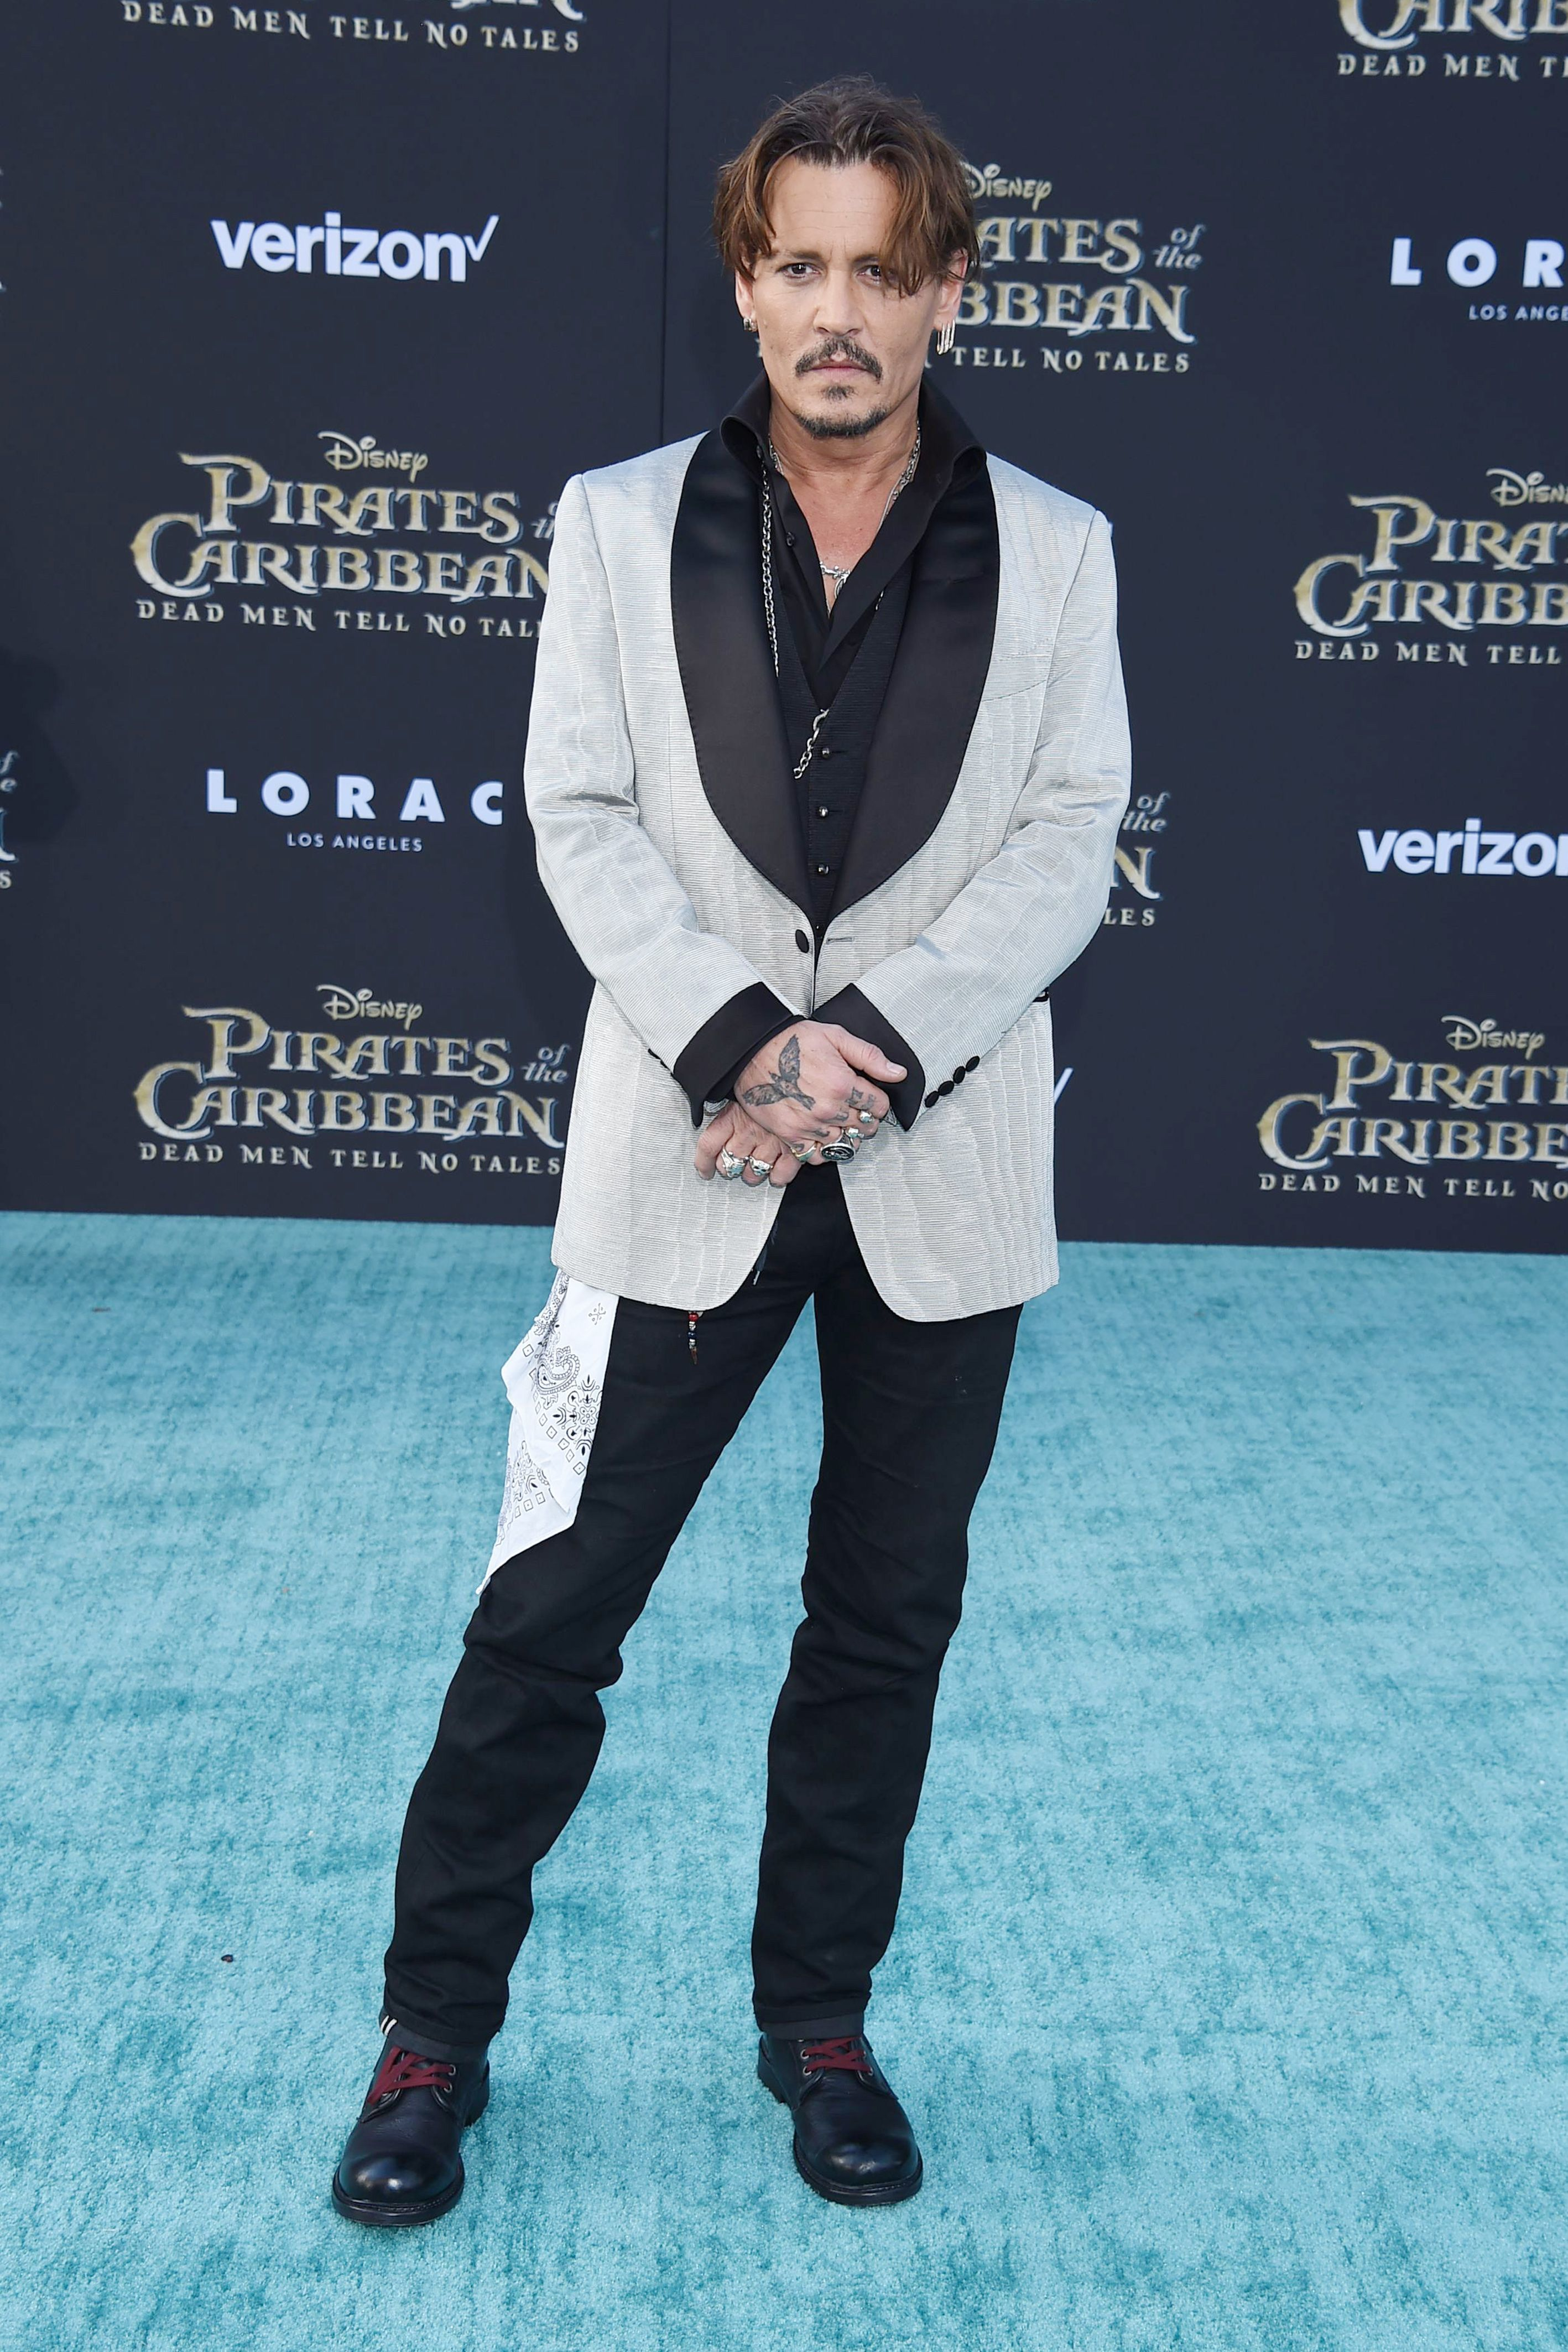 Johnny Depp slams lawsuit claims he has 'pyschological issues'